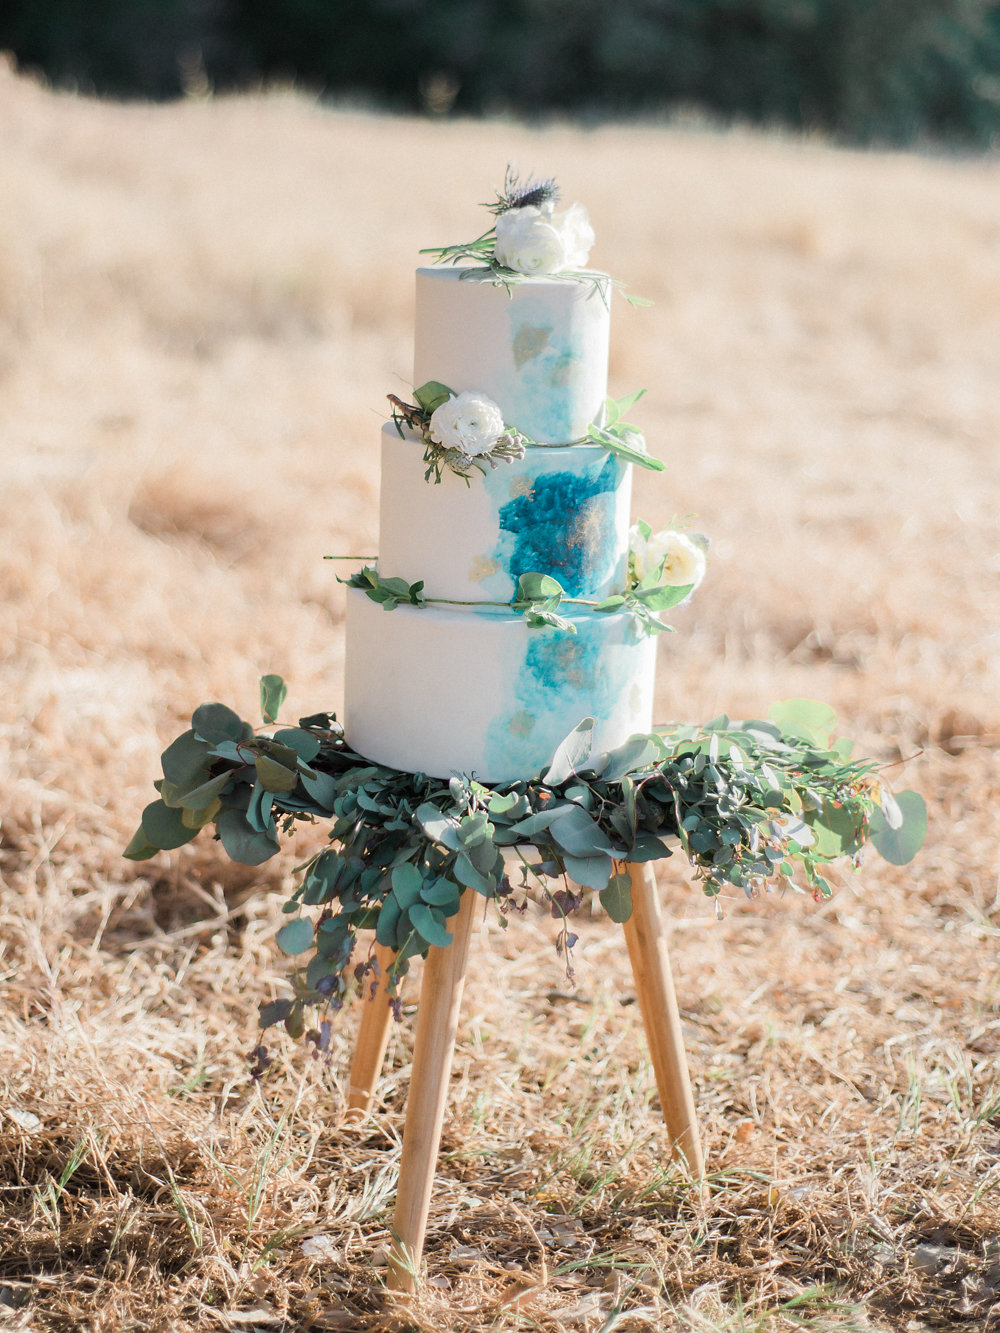 painted wedding cake - photo by Anya Kernes Photography http://ruffledblog.com/organic-wedding-inspiration-with-shades-of-blue